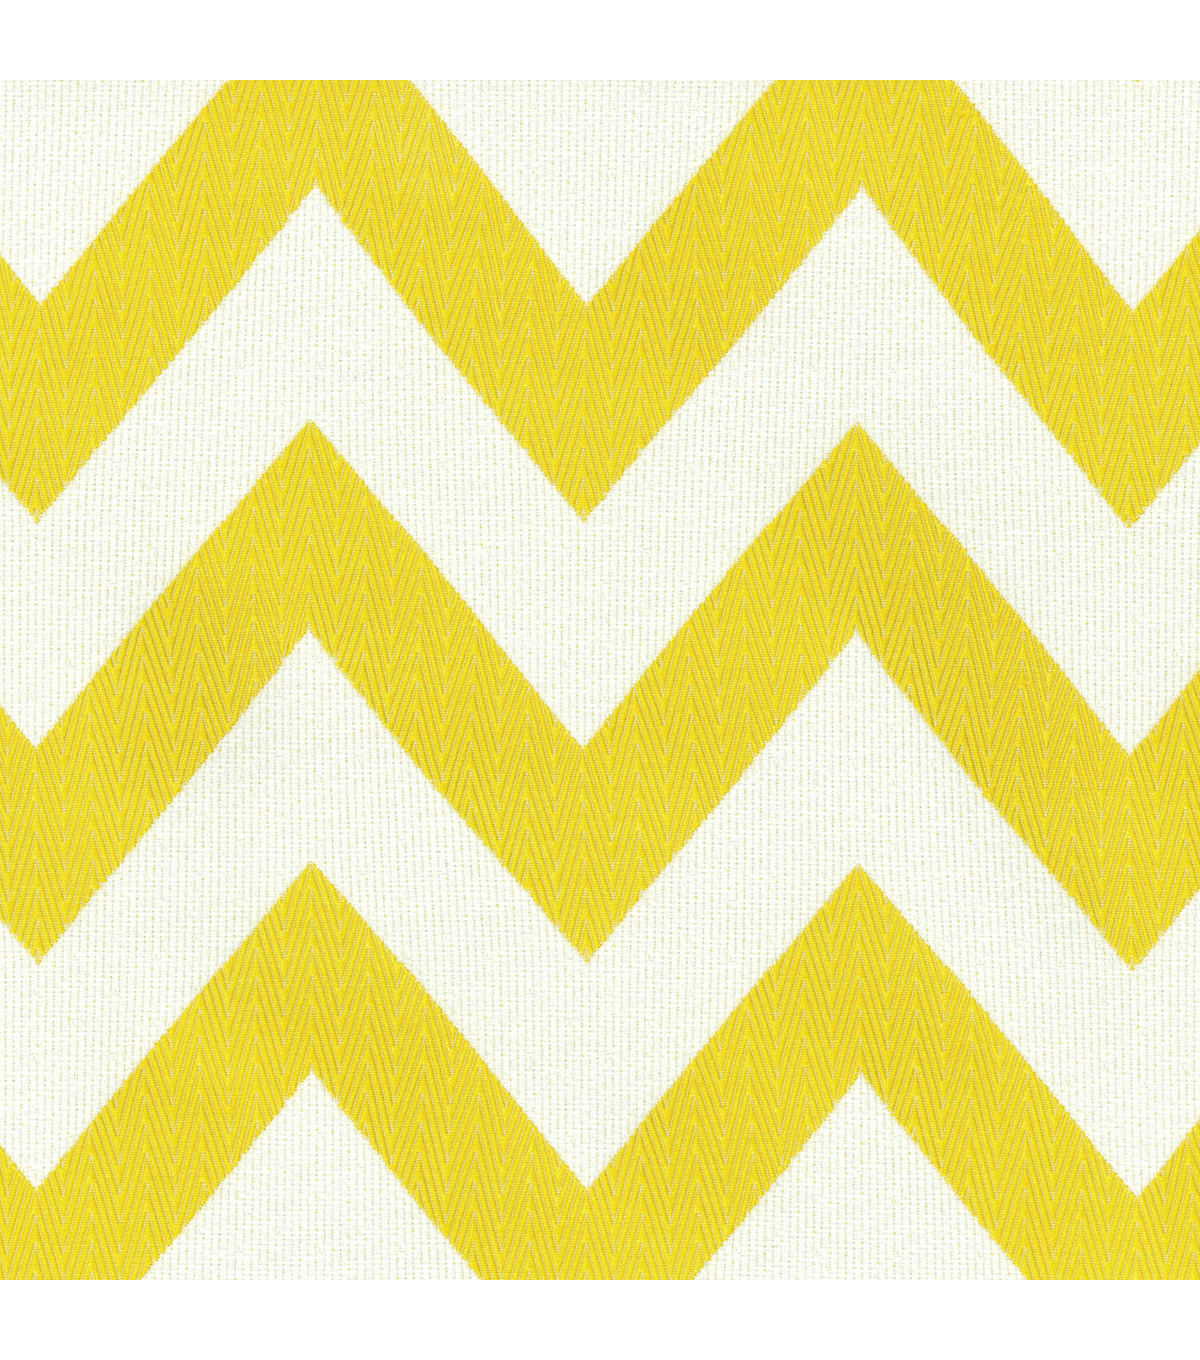 Chevron Chic/sunshine Swatch